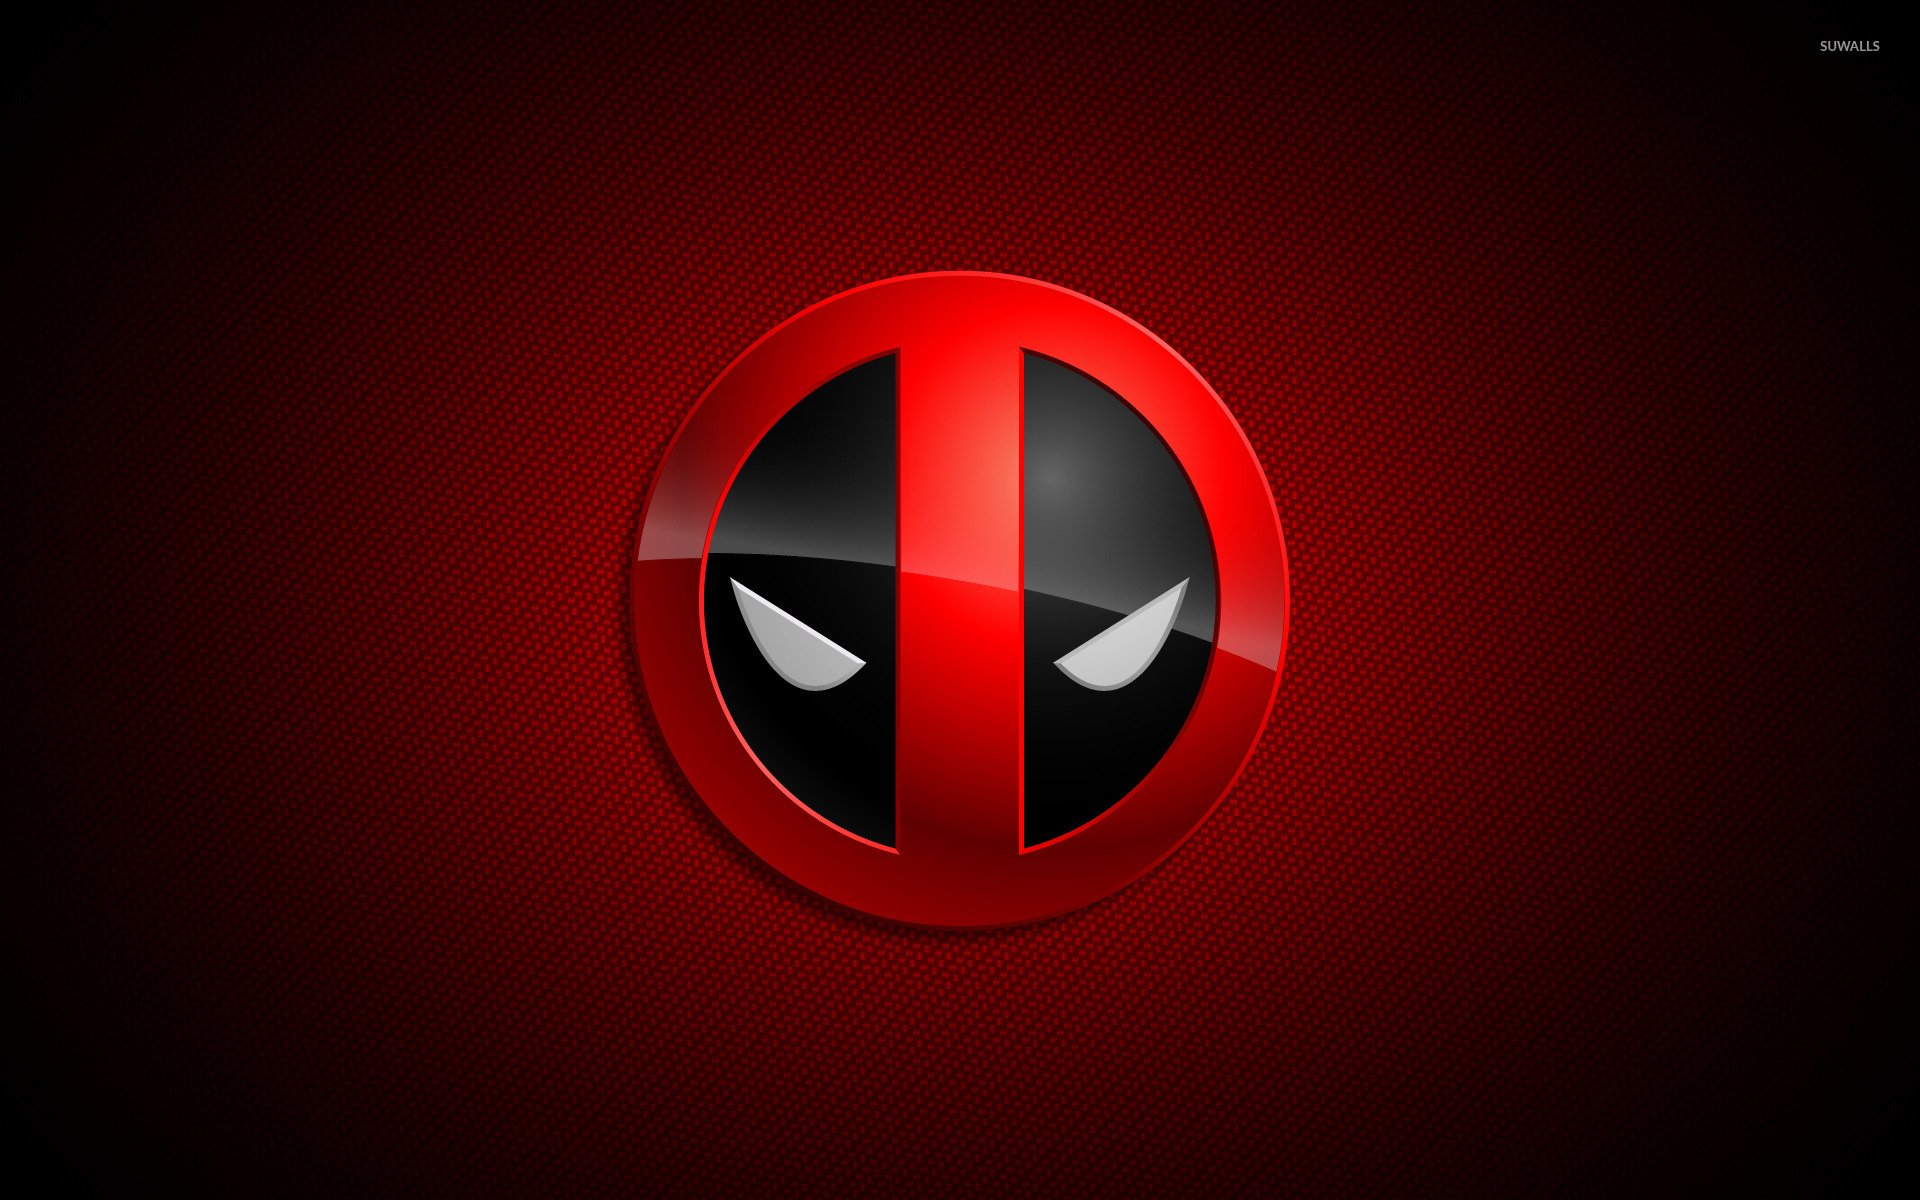 Deadpool wallpaper Game wallpapers 21207 1366x768